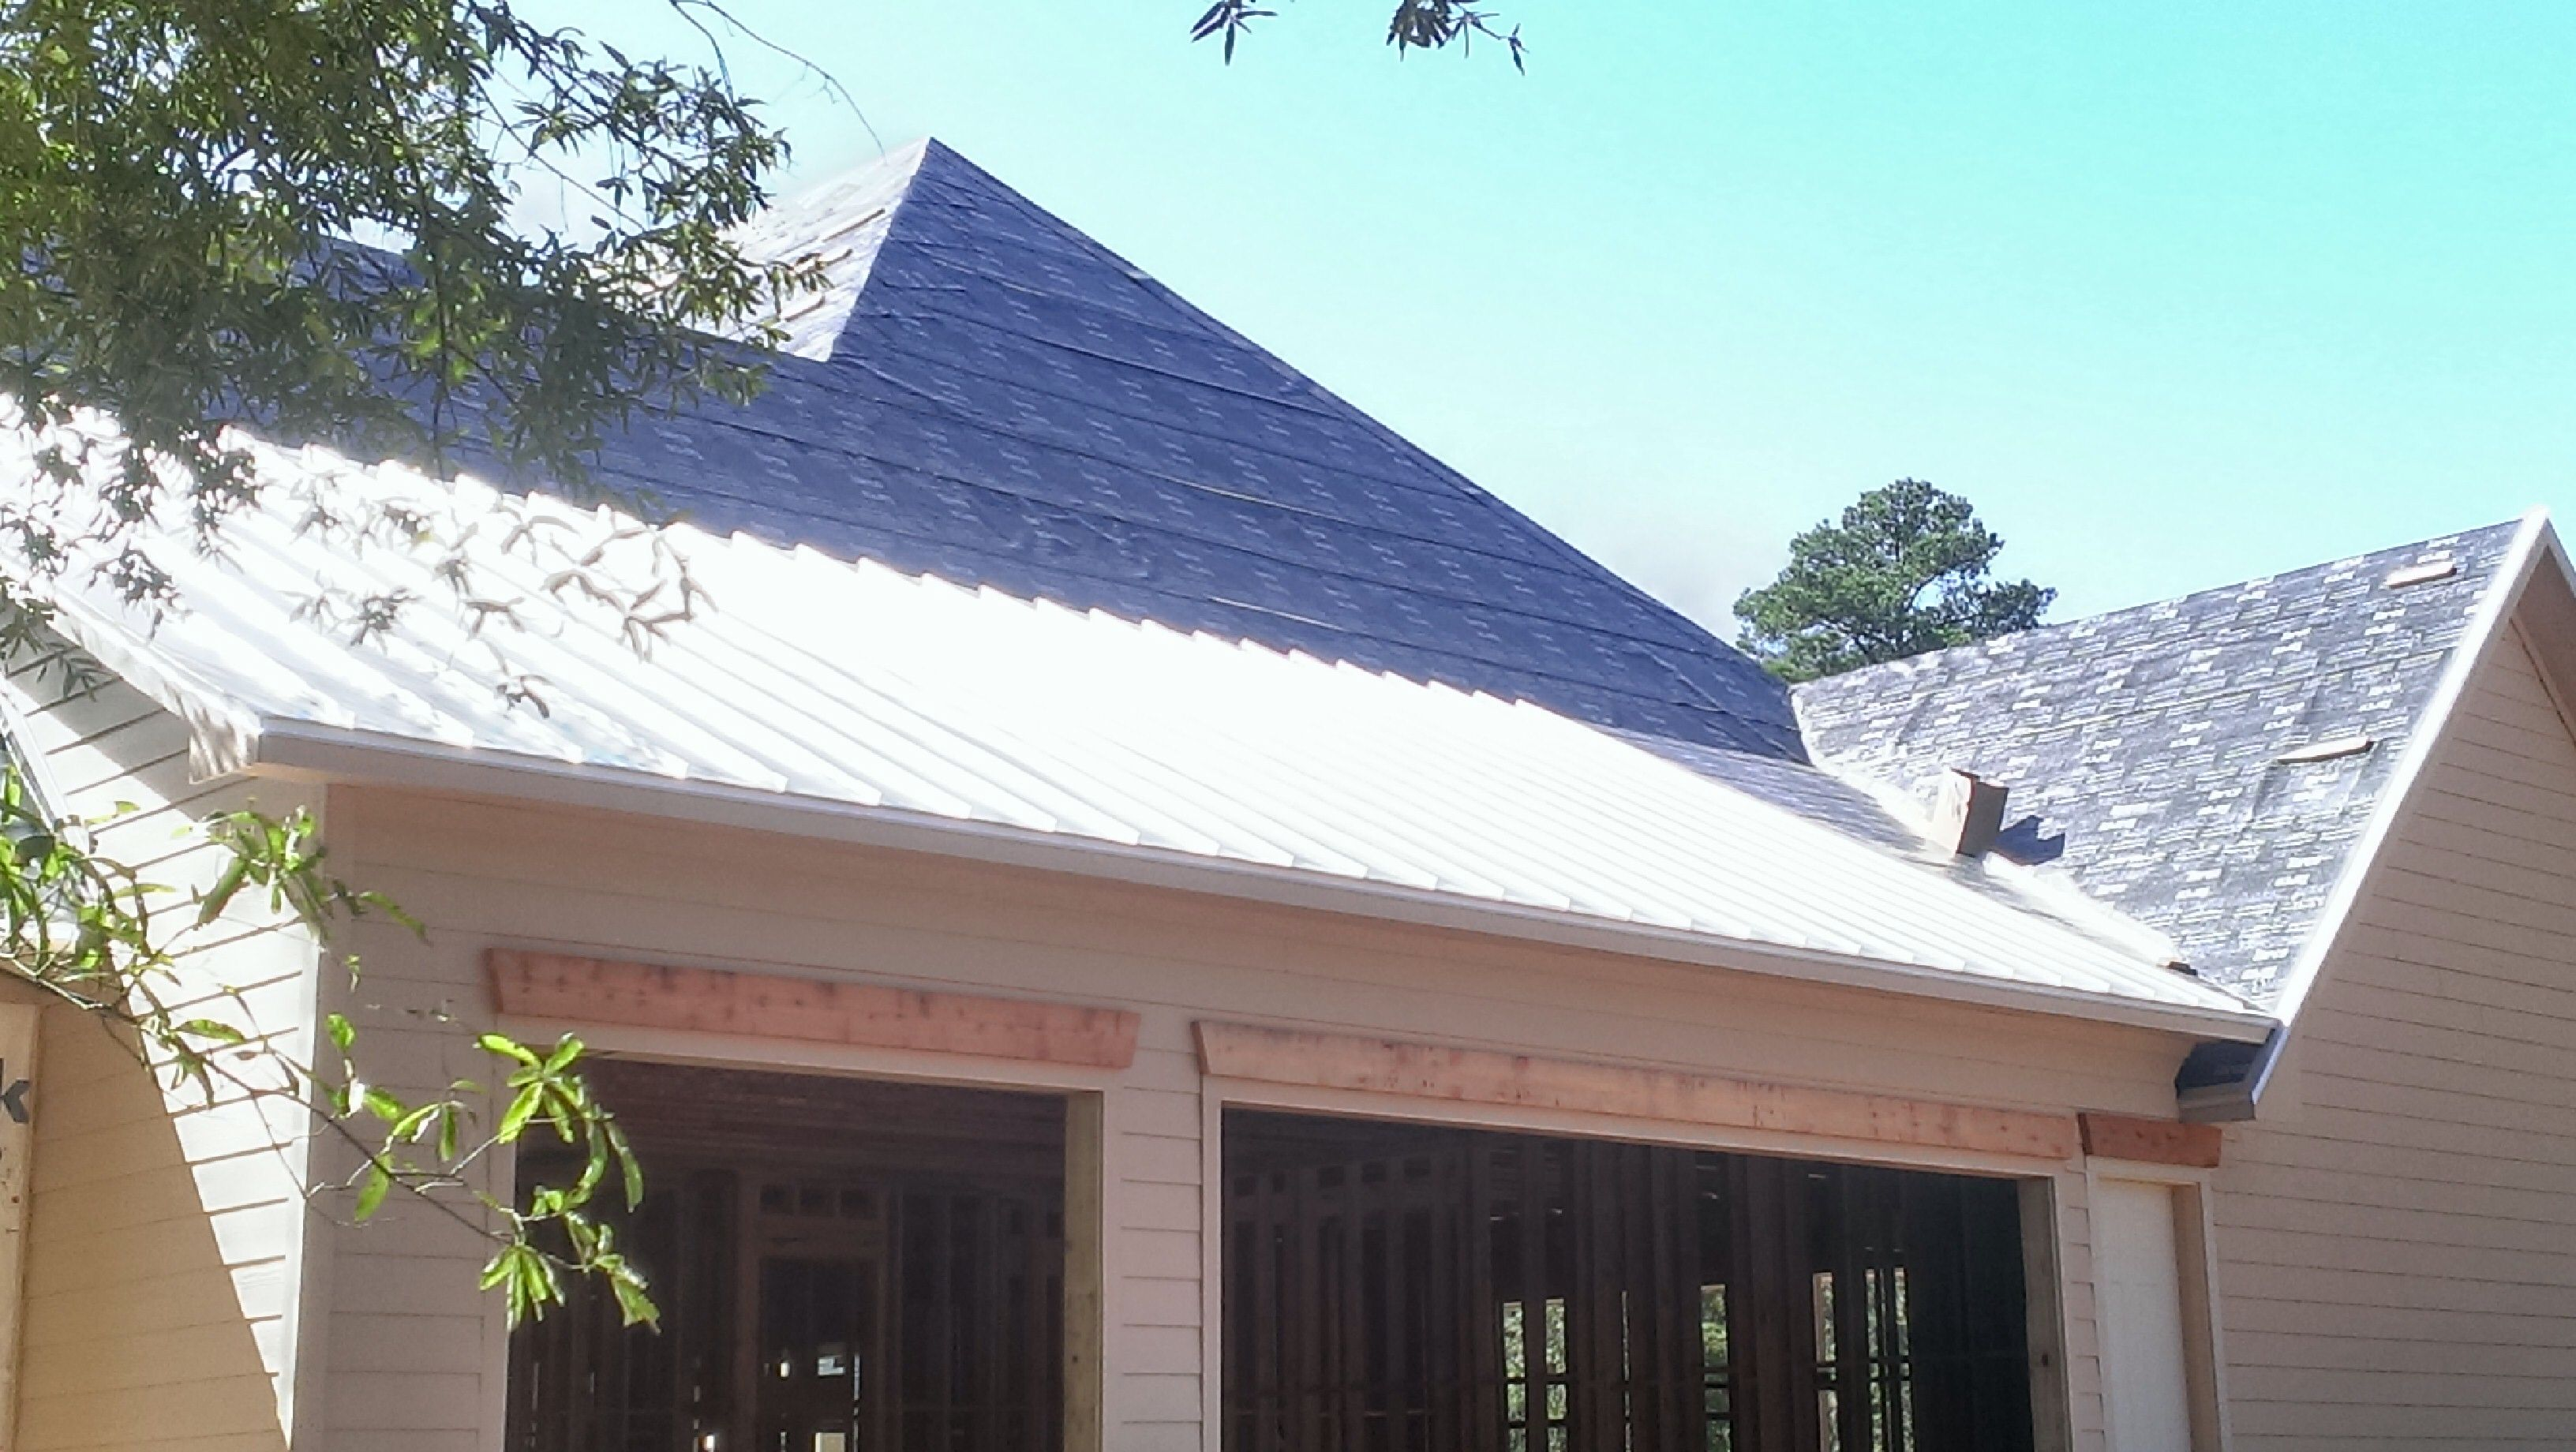 Standing Seam Metal Roof On New Home In Magnolia Tx Standing Seam Metal Roof Metal Roof Standing Seam